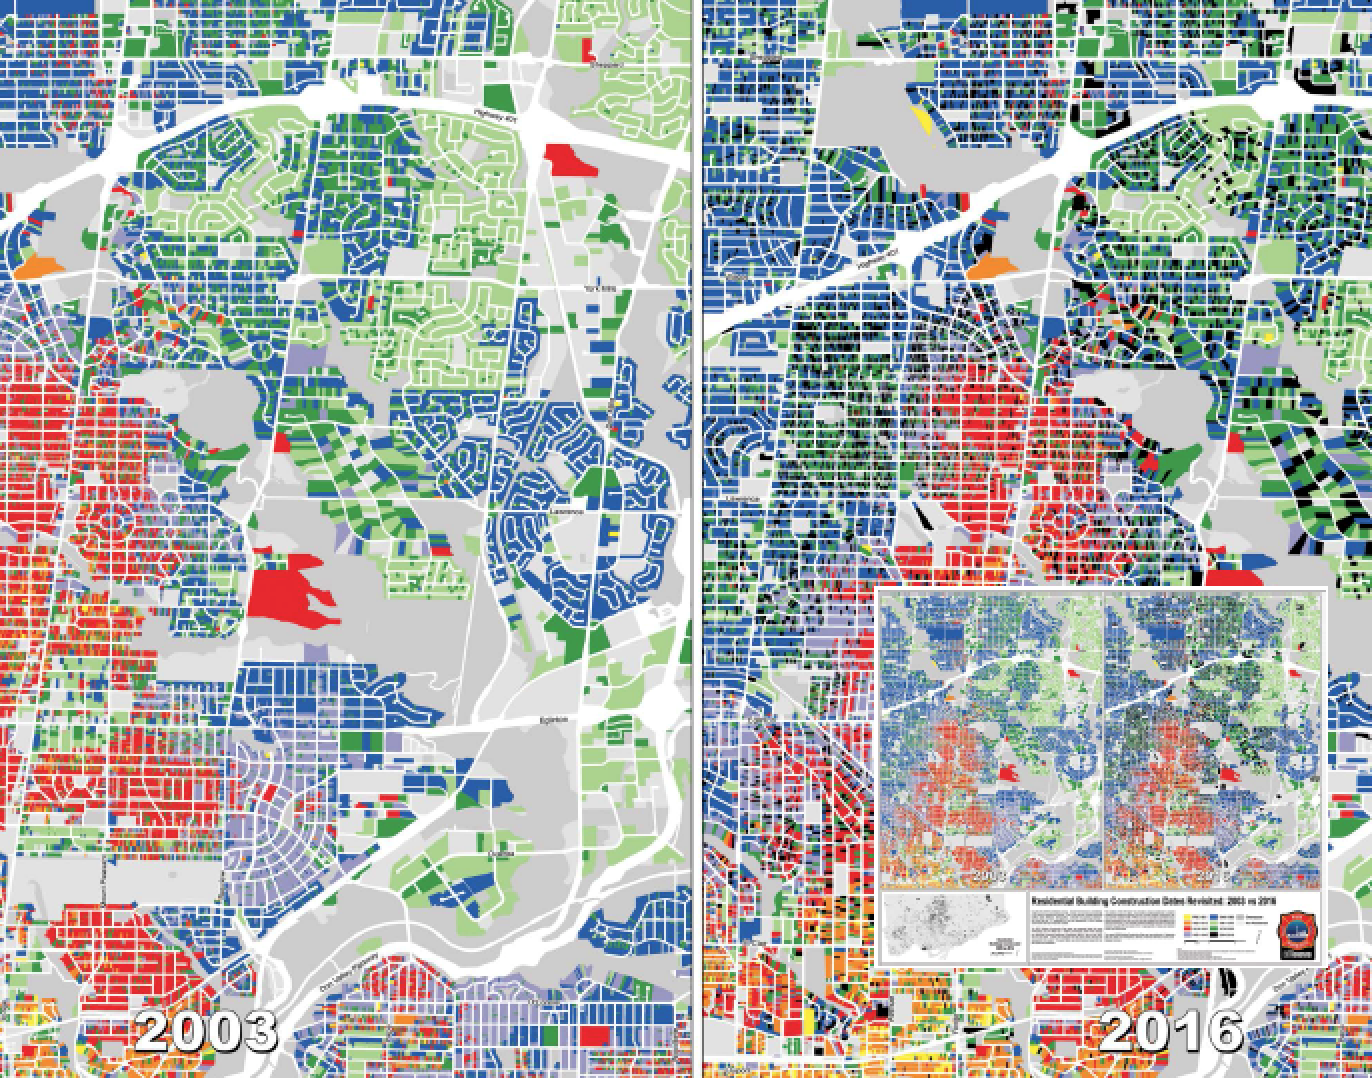 """A copy of the October map from Esri Canada's 2017 Map Calendar, entitled """"Residential Building Construction Dates Revisited: 2003 vs. 2016"""" by the City of Toronto. This colourful map shows buildings in Toronto that are at higher, middling and lower risk of fire depending on their date of construction."""